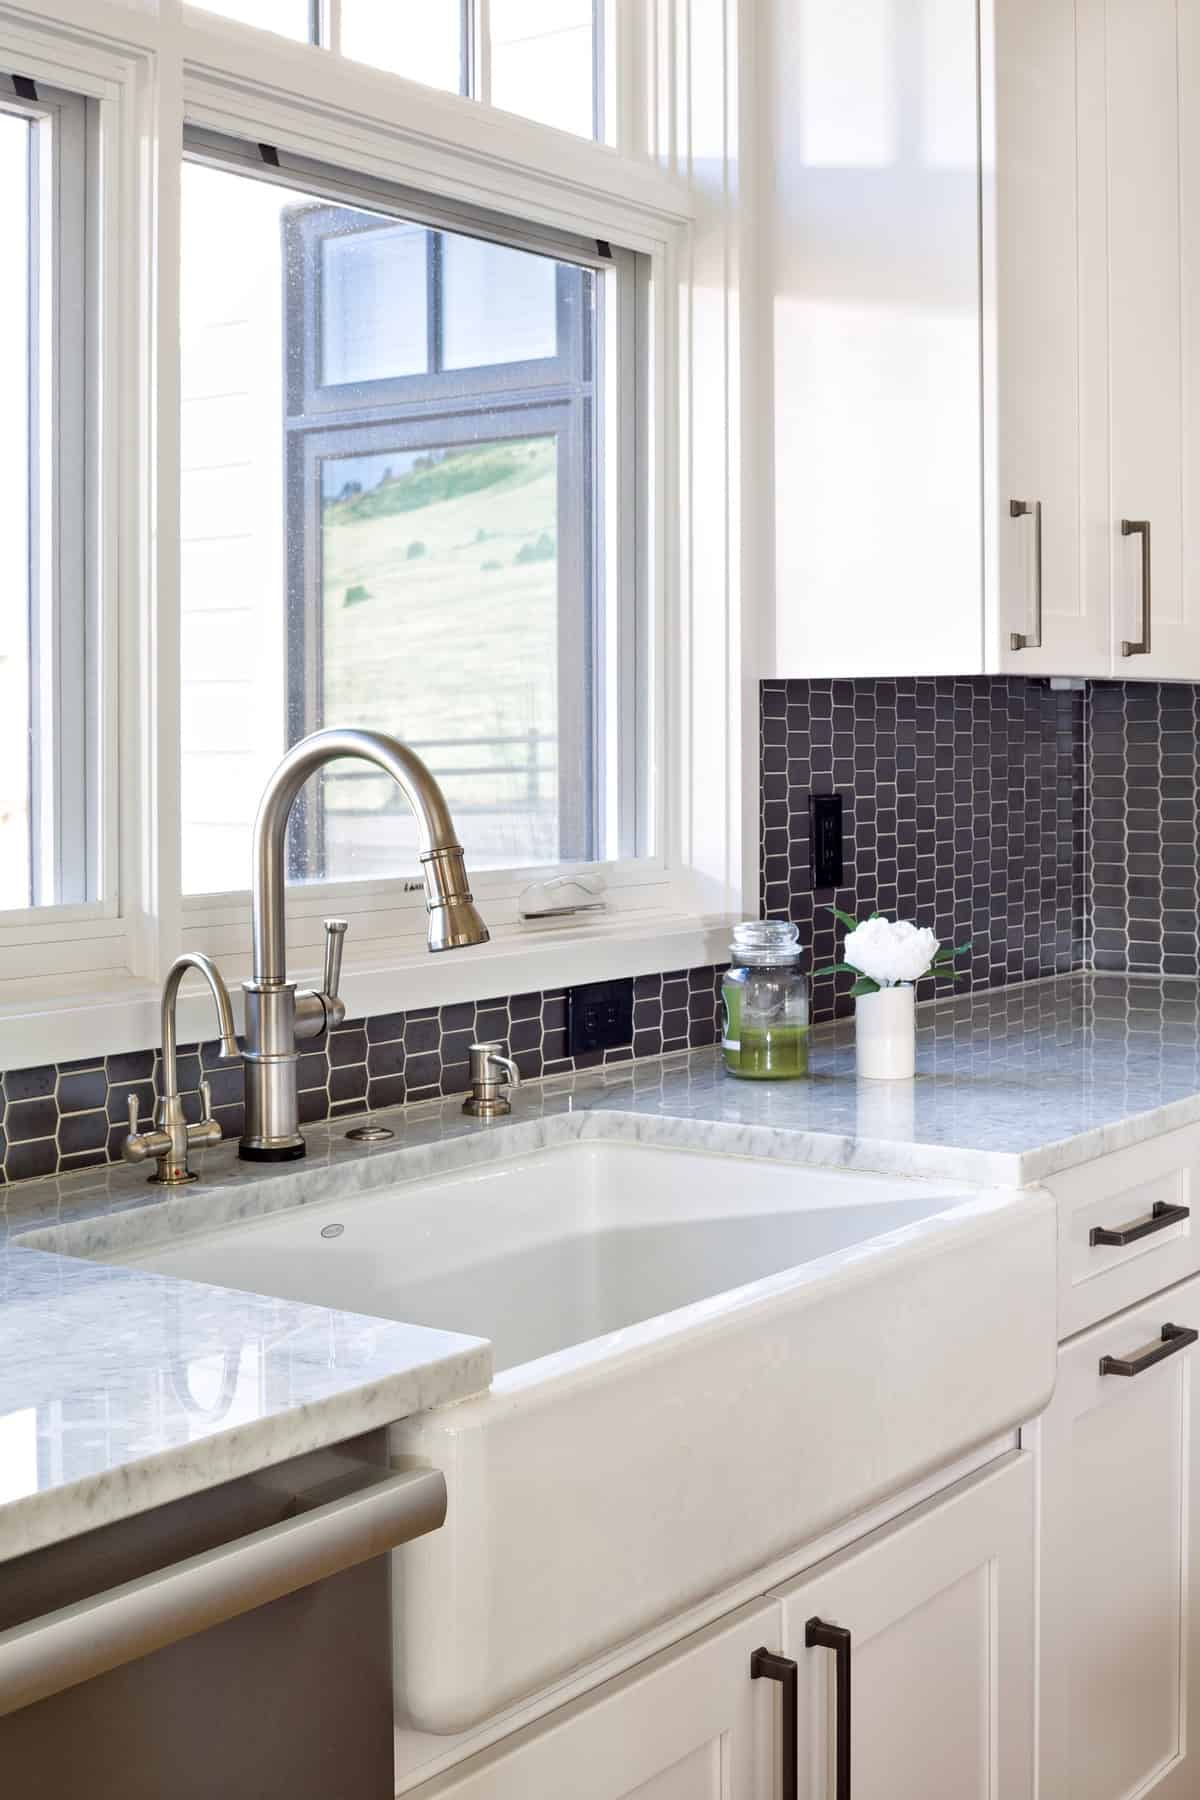 Boulder New Home Build - Training Paradise - Kitchen Sink